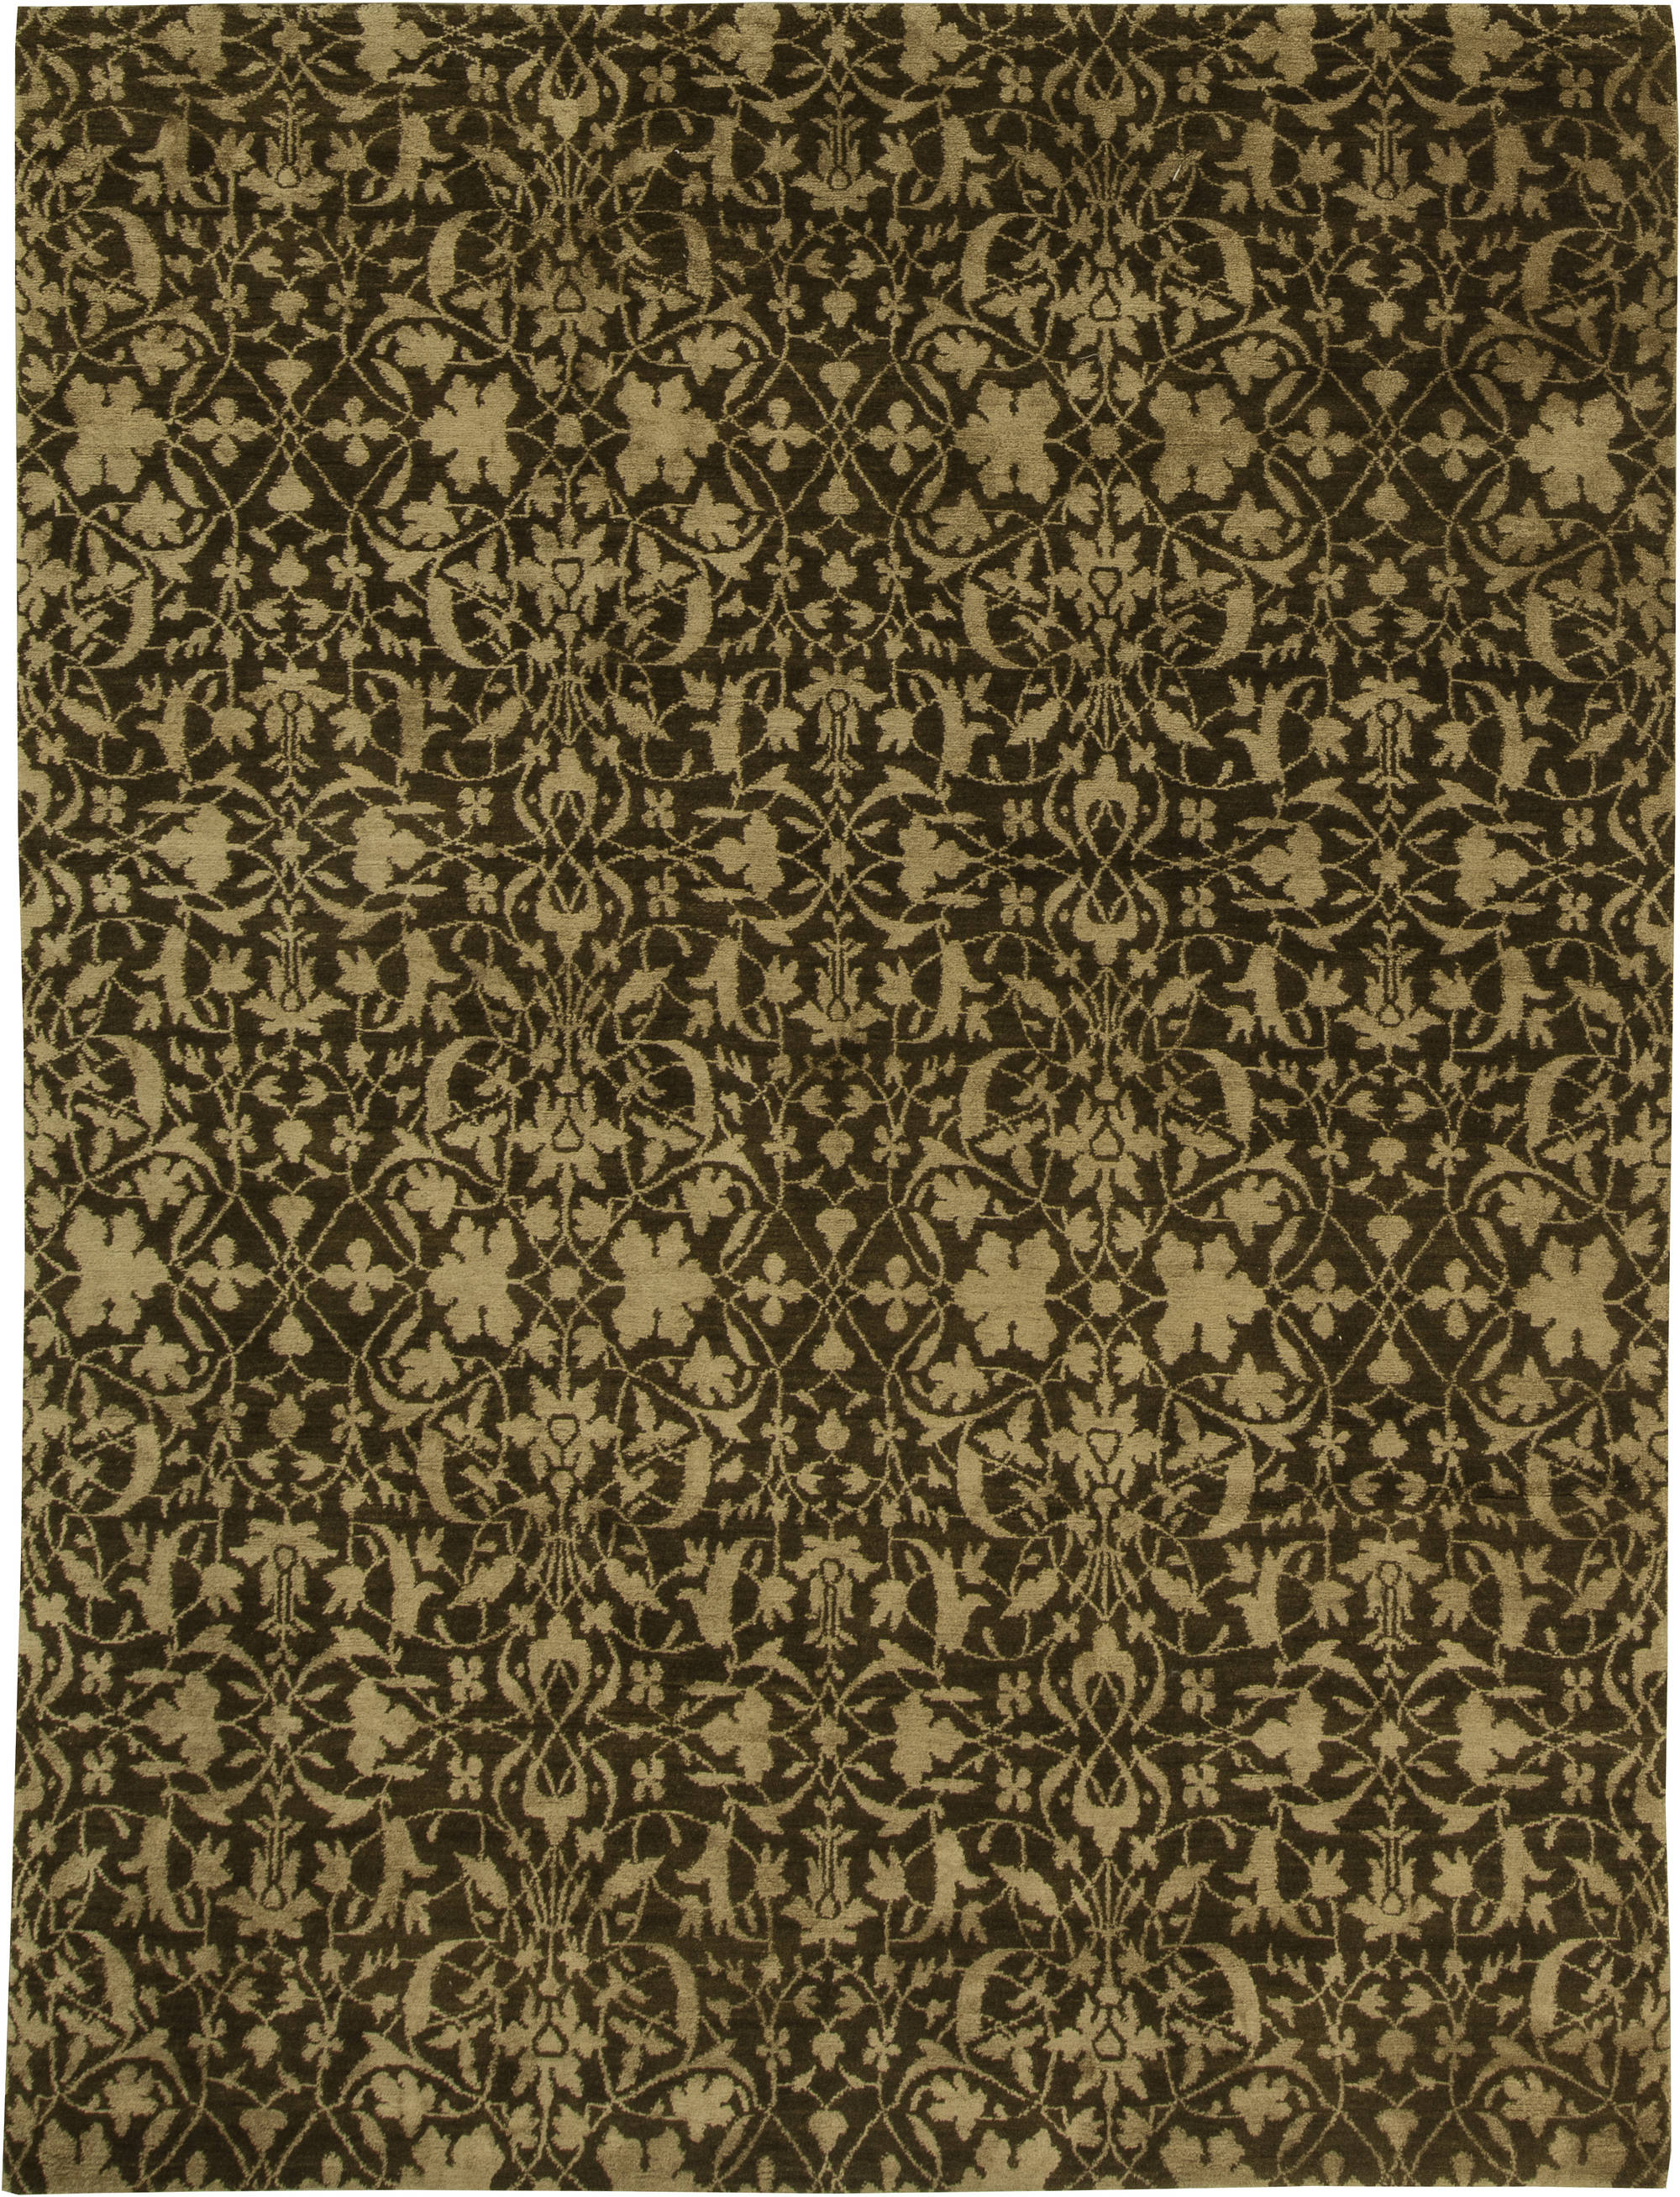 Tibetan Rugs Nepal Carpets For Sale Large Area Wool